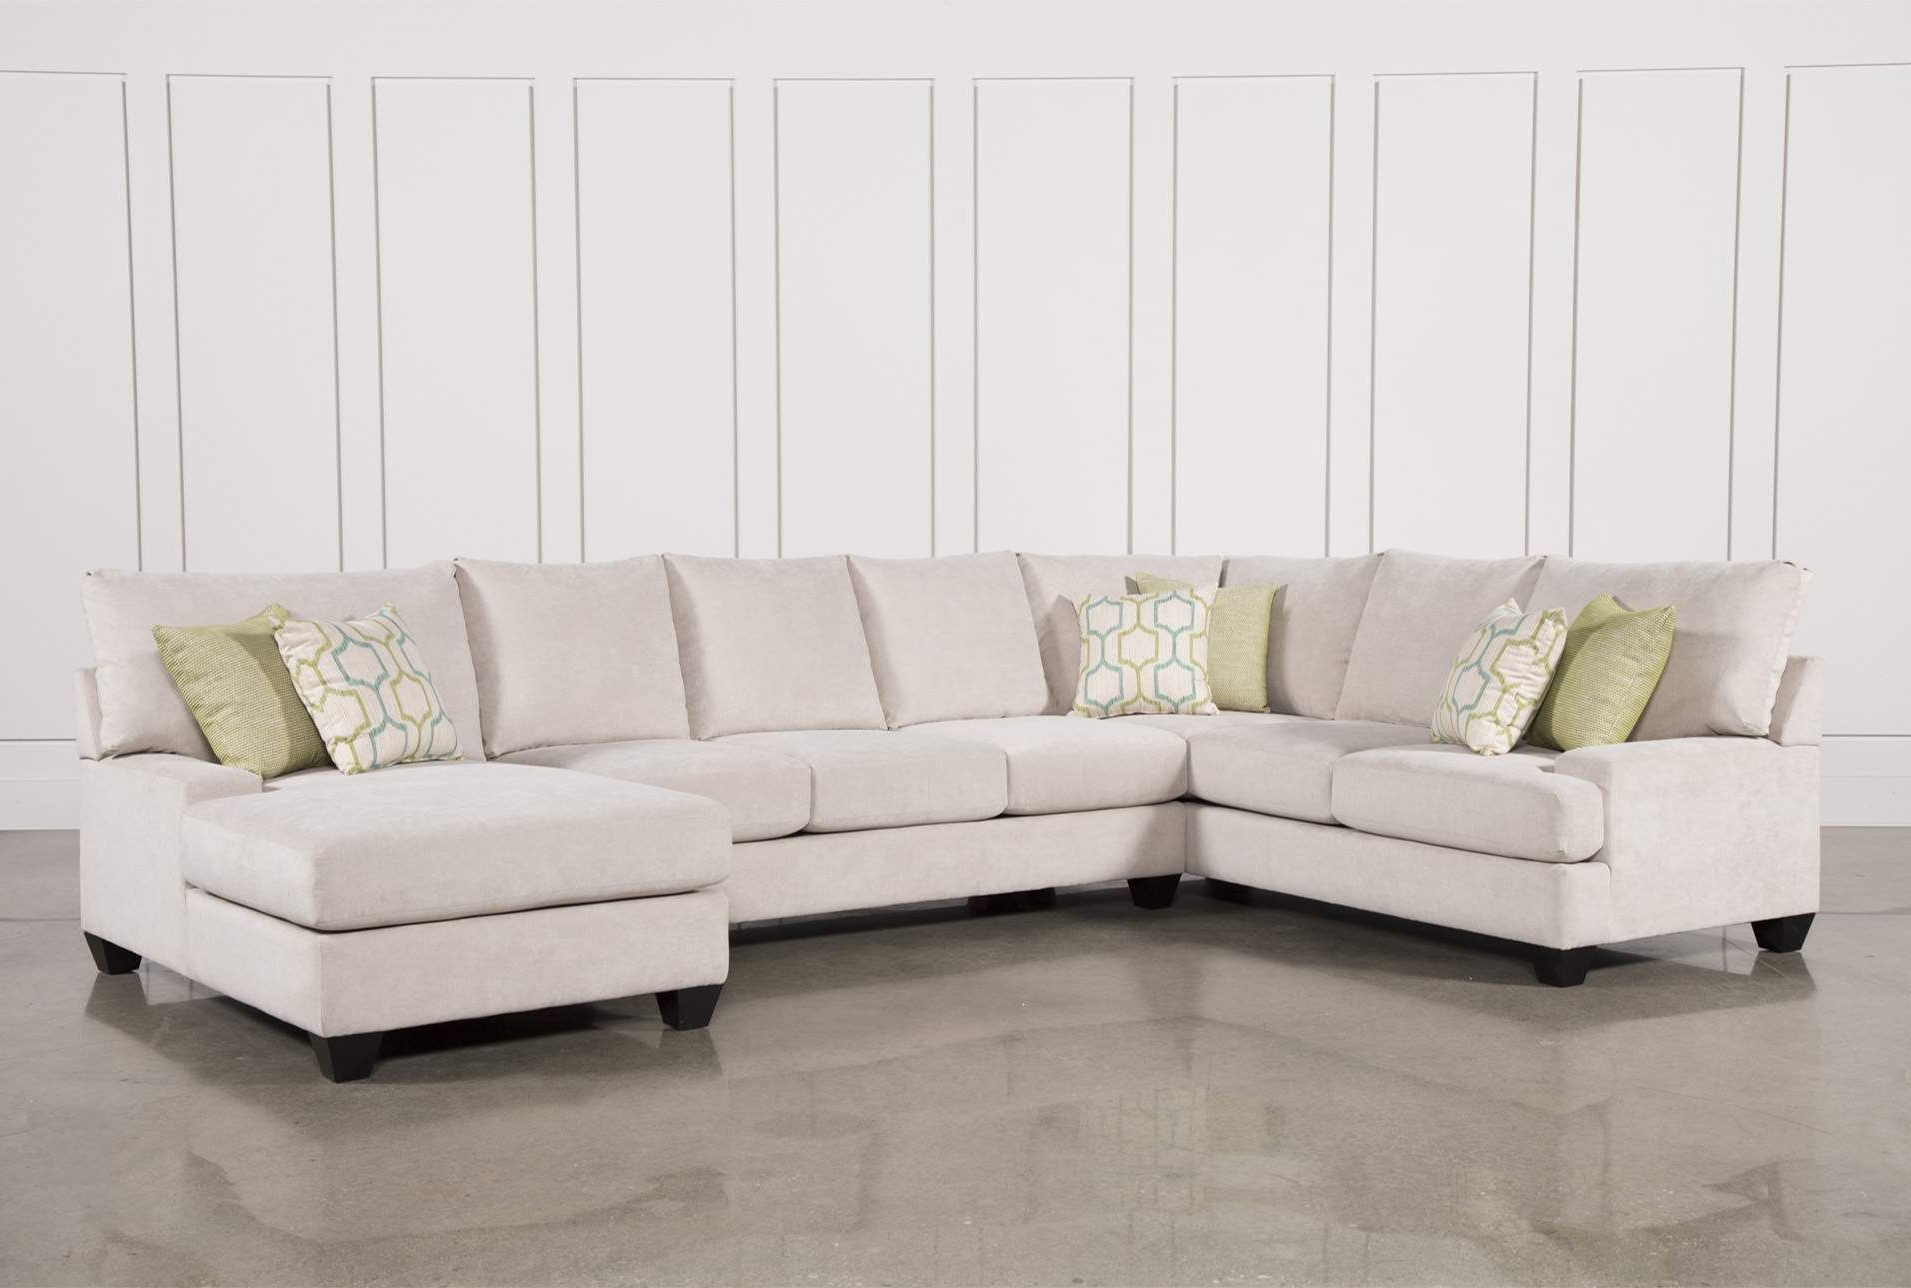 Harper Foam 3 Piece Sectional W/raf Chaise For Most Recently Released Meyer 3 Piece Sectionals With Laf Chaise (View 5 of 20)